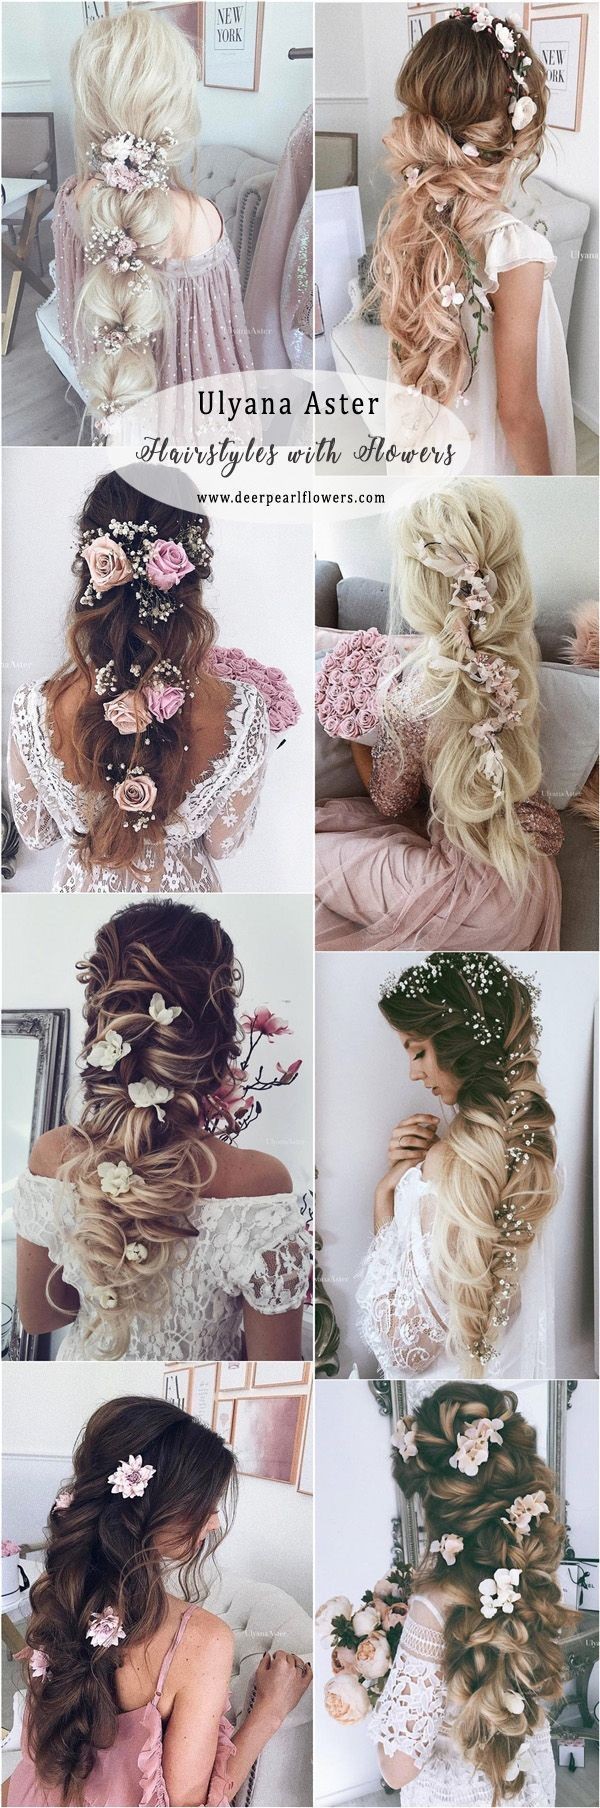 Ulyana Aster Long Wedding Hairstyles with Flowers #weddings #weddingideas #weddnghairstyles #hairstyles ❤️ http://www.deerpearlflowers.com/ulyana-aster-wedding-hairstyles-2/ #weddinghairstyles #weddinghairstyleswithflowers